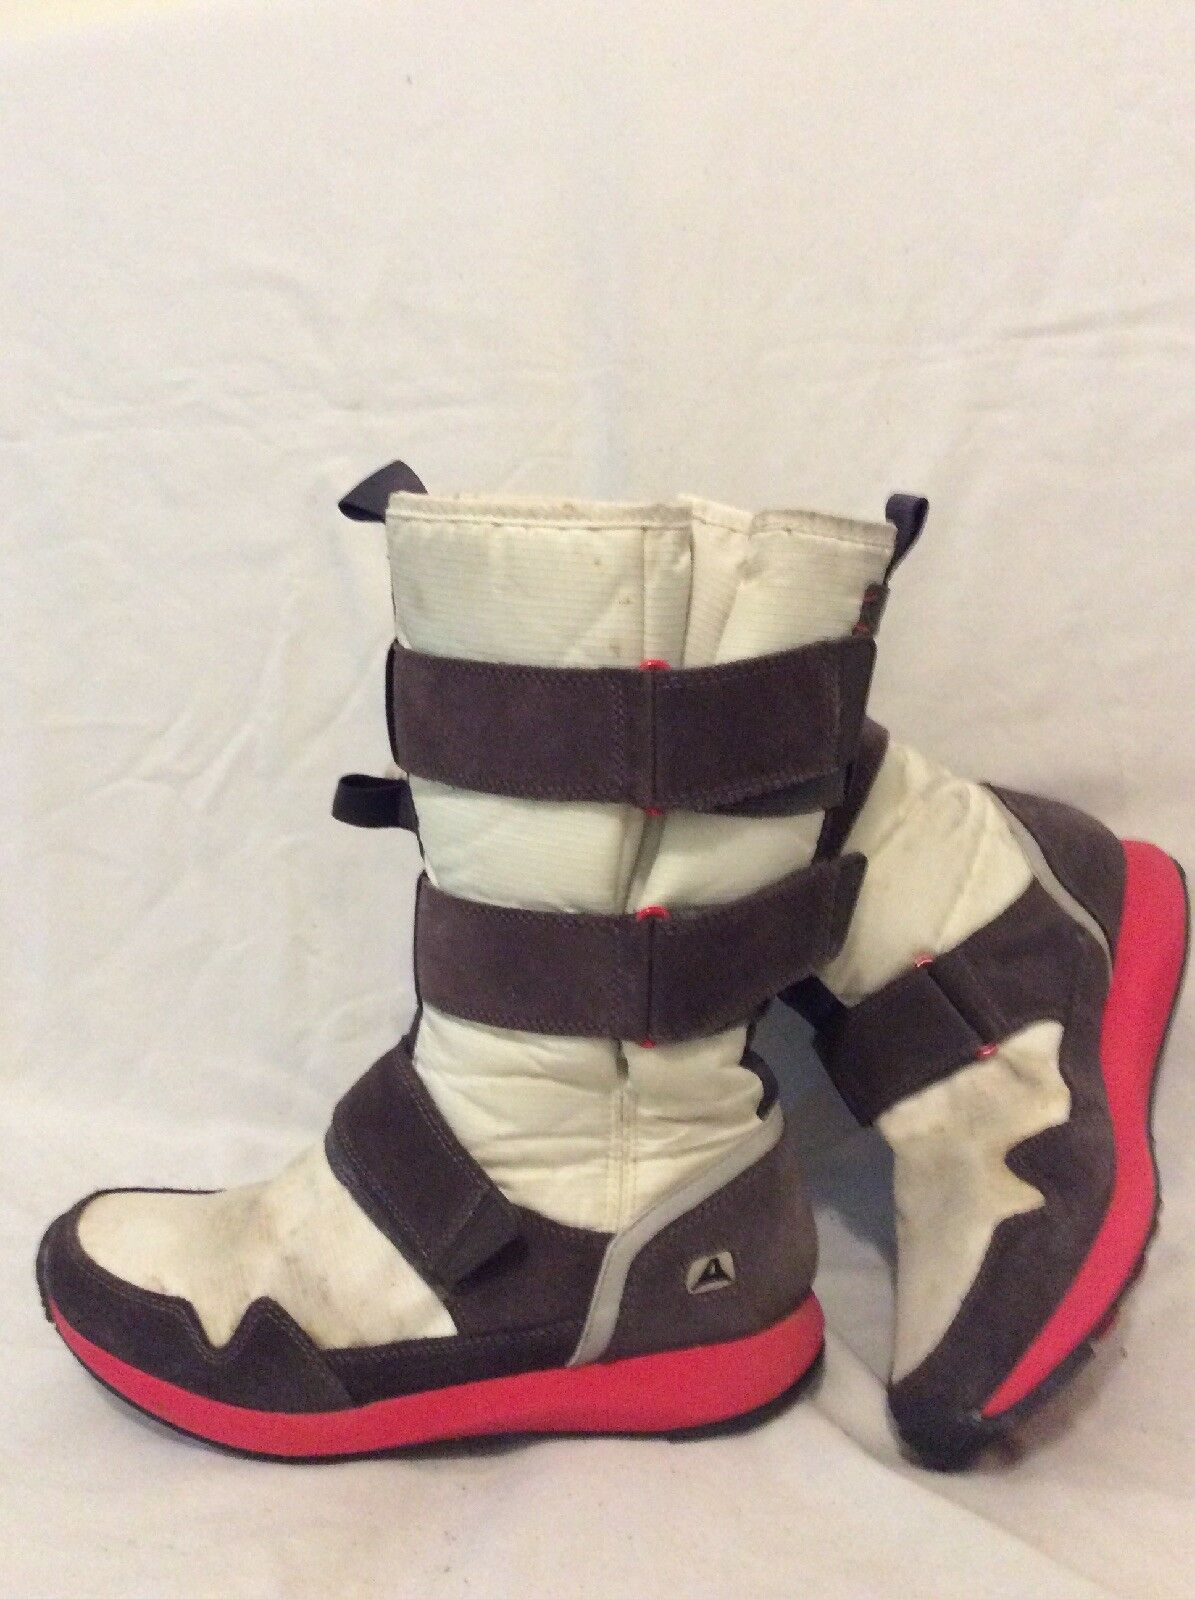 Clarks White&Brown Mid Calf Boots Size 5D